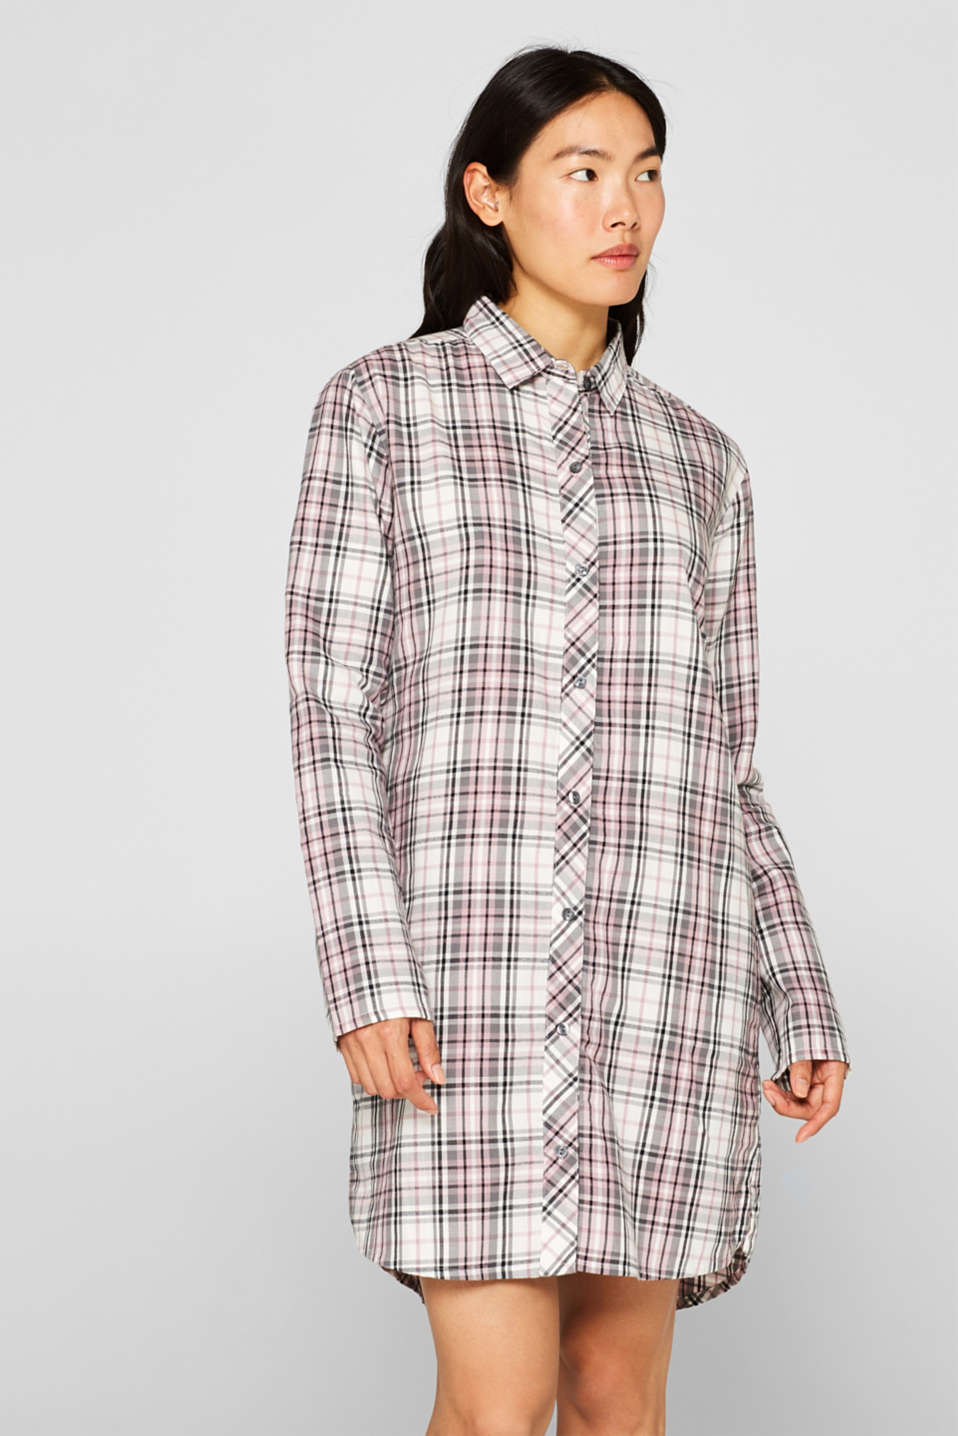 Flannel nightshirt made of 100% cotton